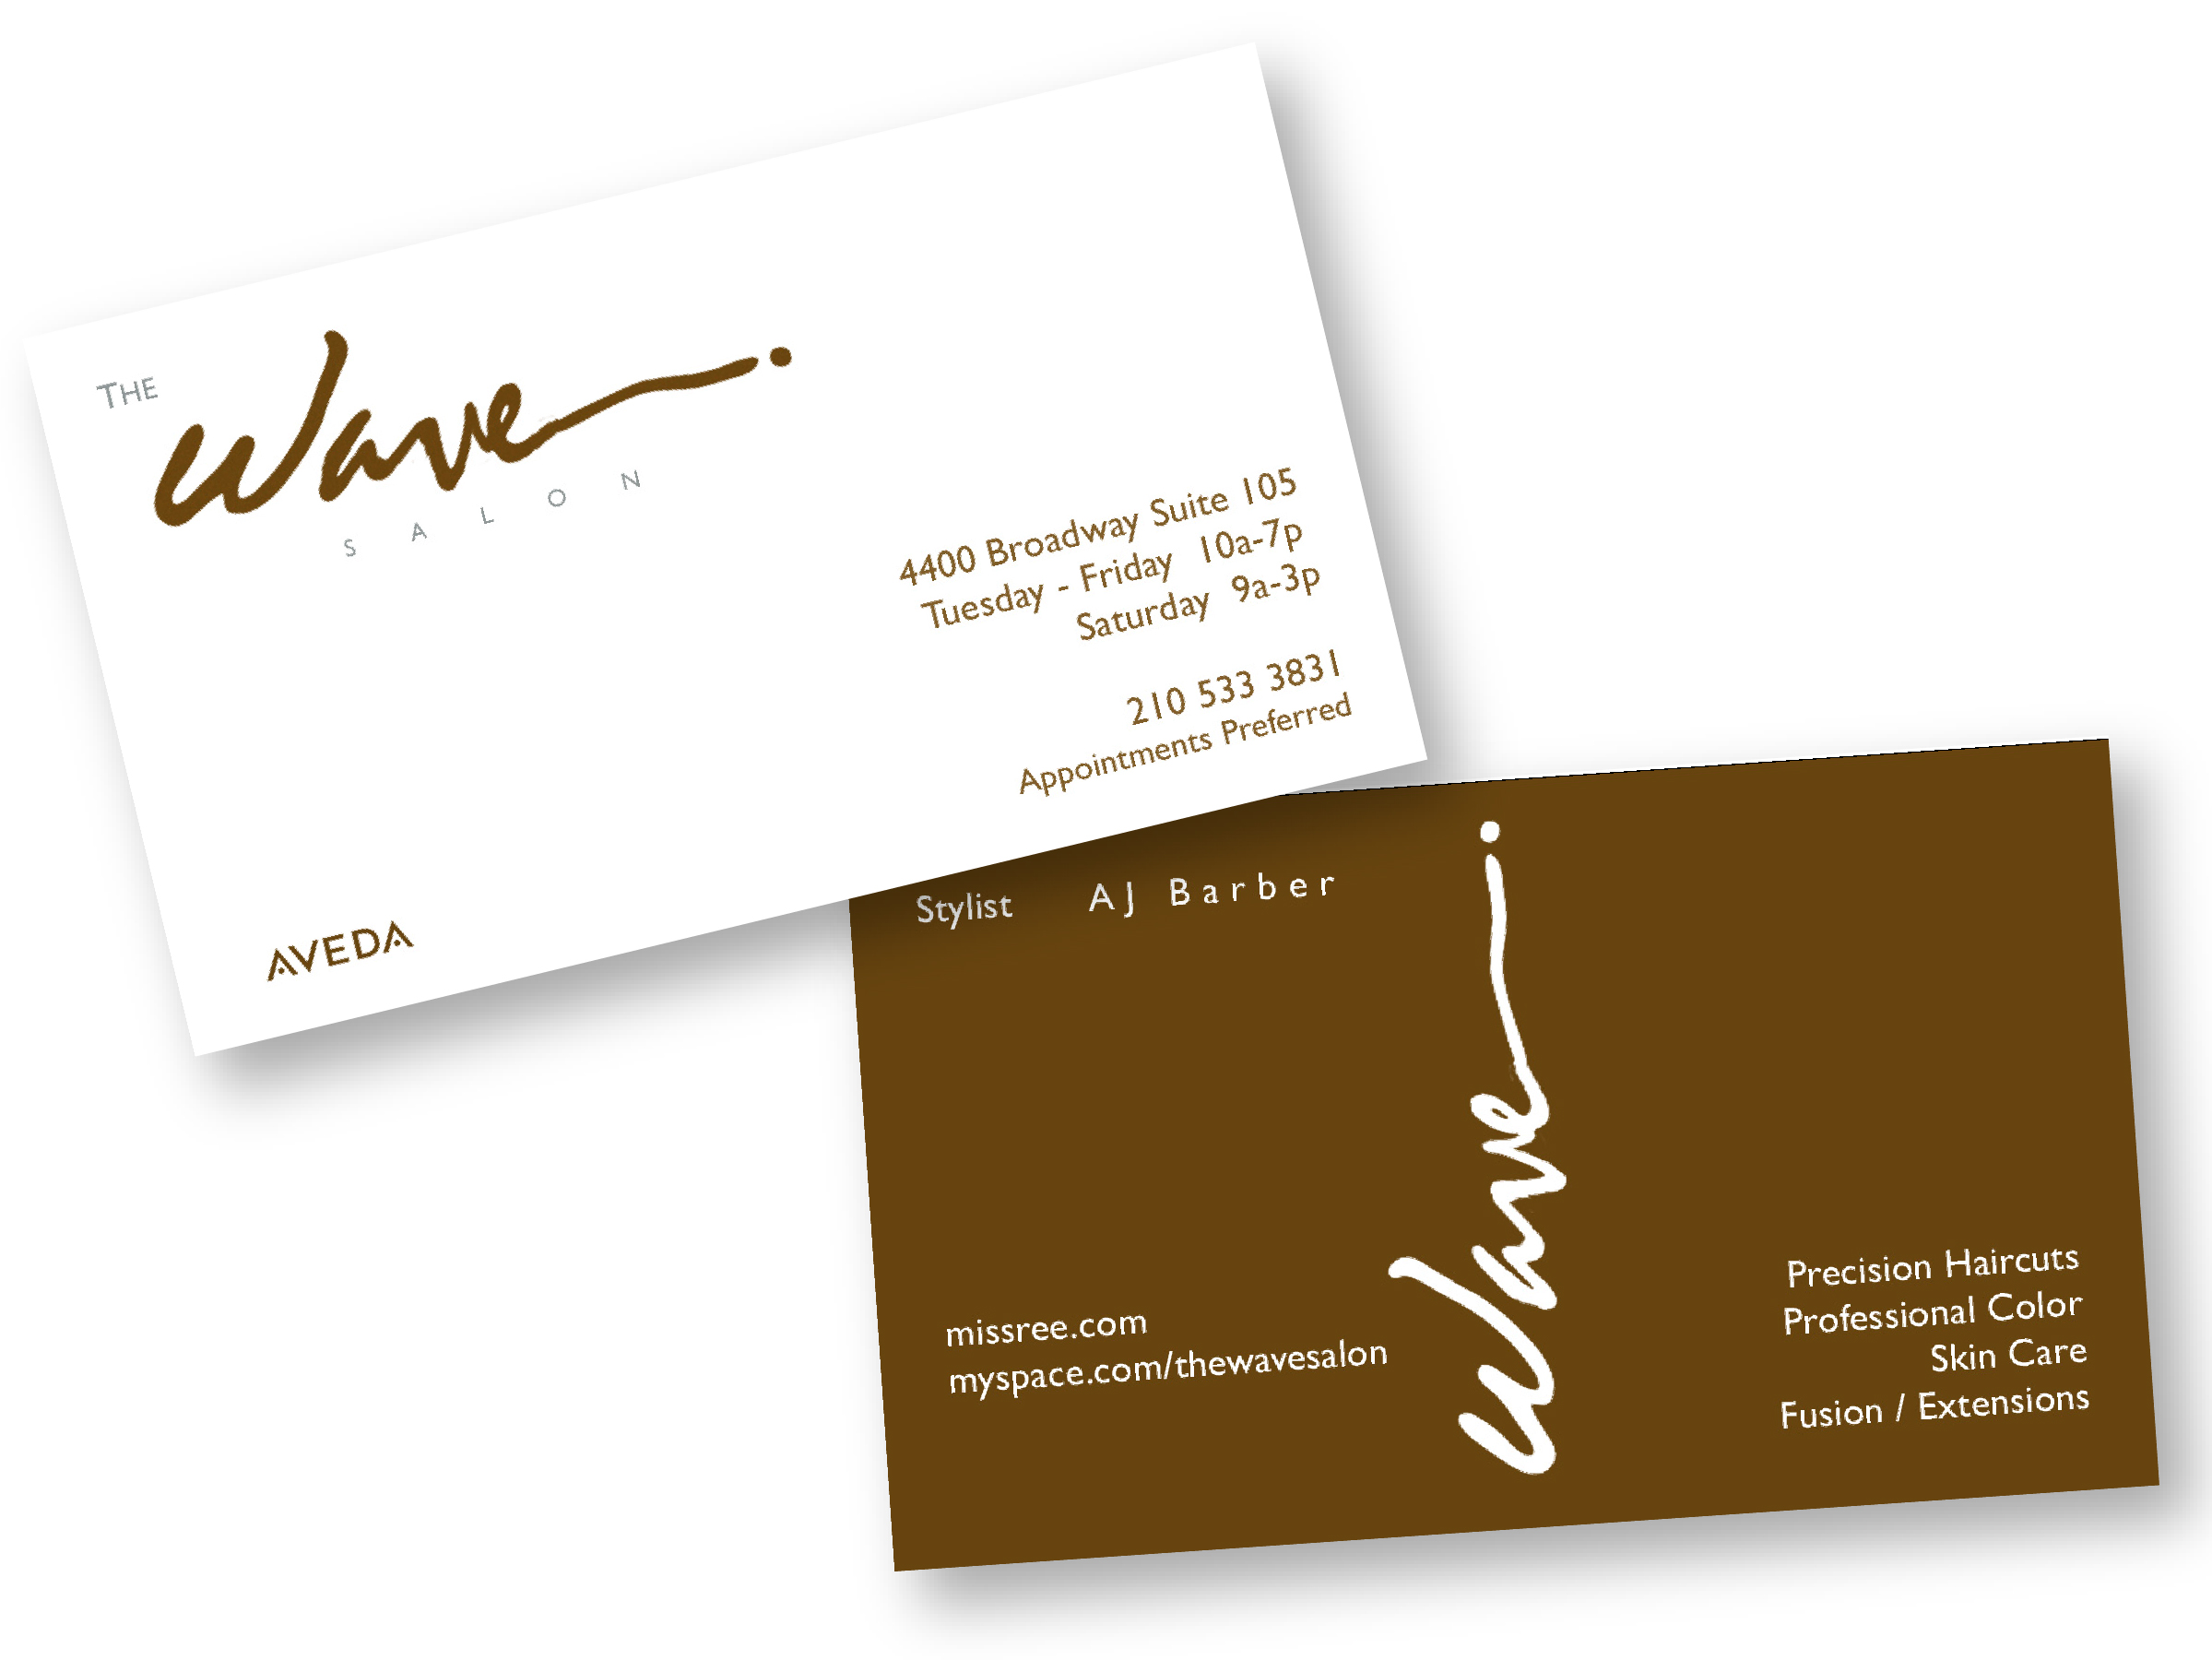 The-Wave-Business-Card-2-01.jpg